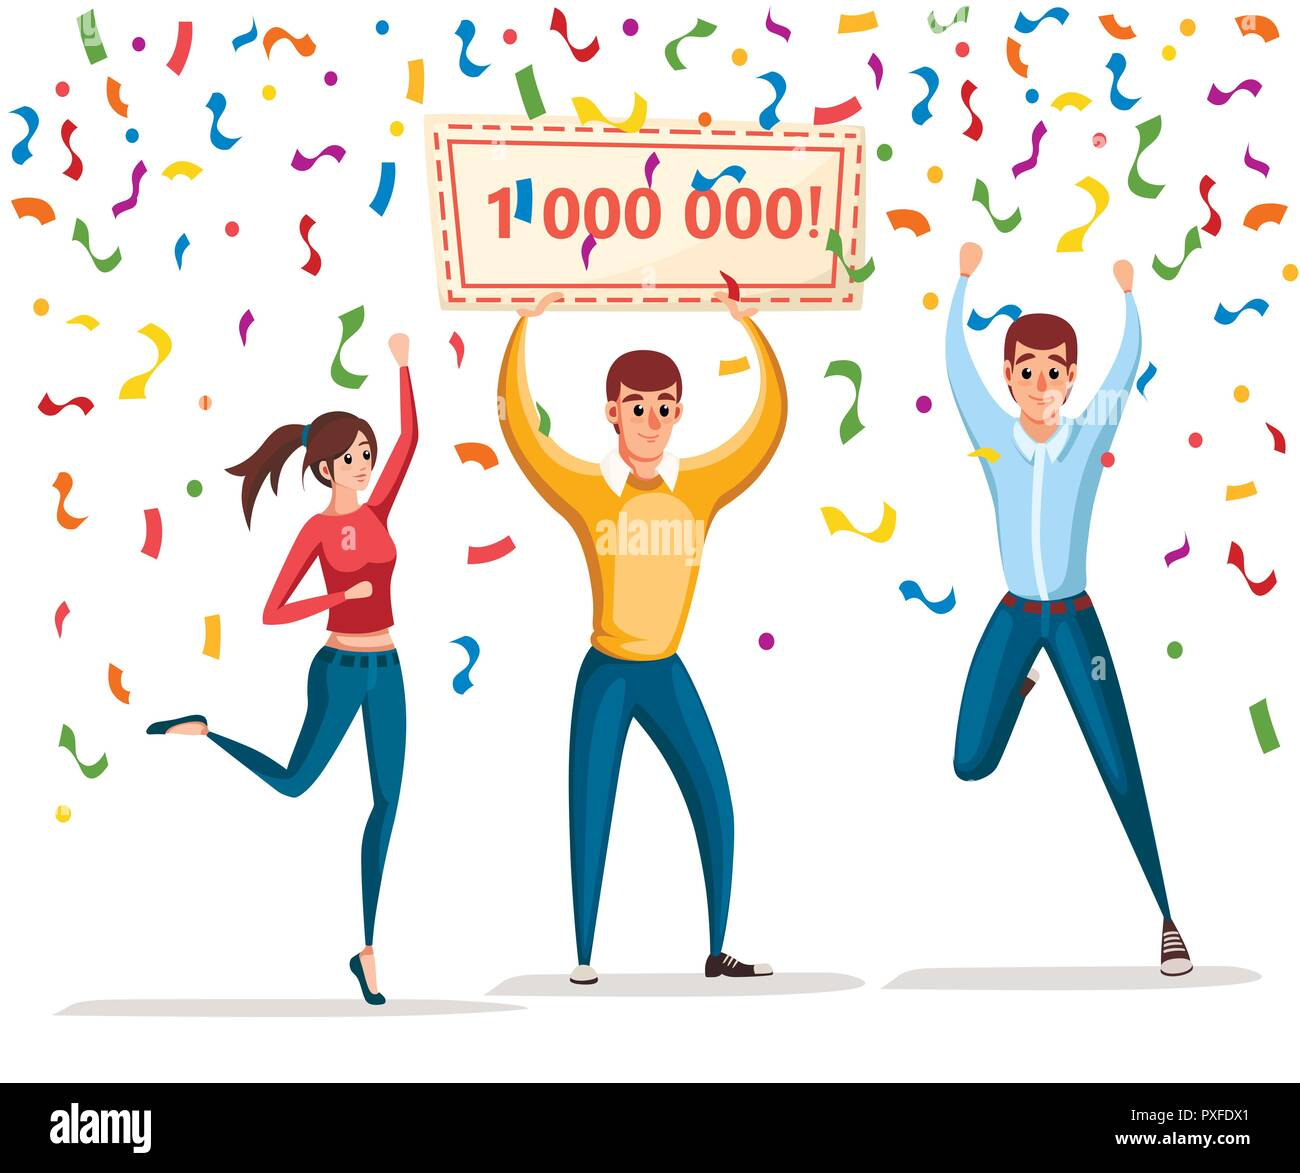 Lottery winner. Women and man stand with winner banner, 1000000. Happy people. Win million. Cartoon character design. Flat vector illustration isolate - Stock Image